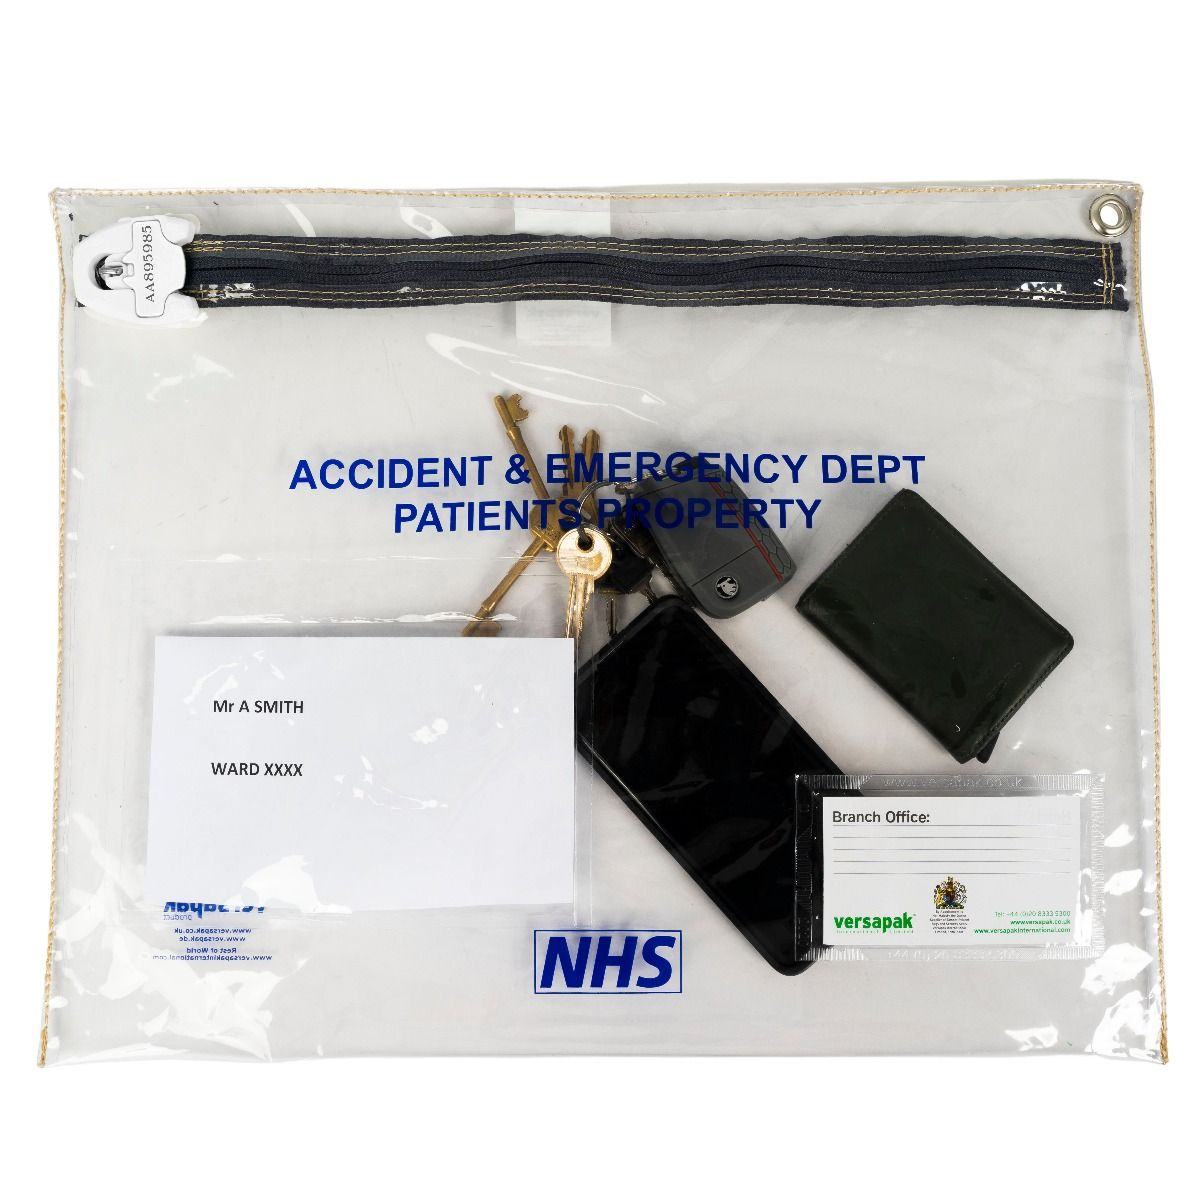 Patient Property Pouch - Accident & Emergency